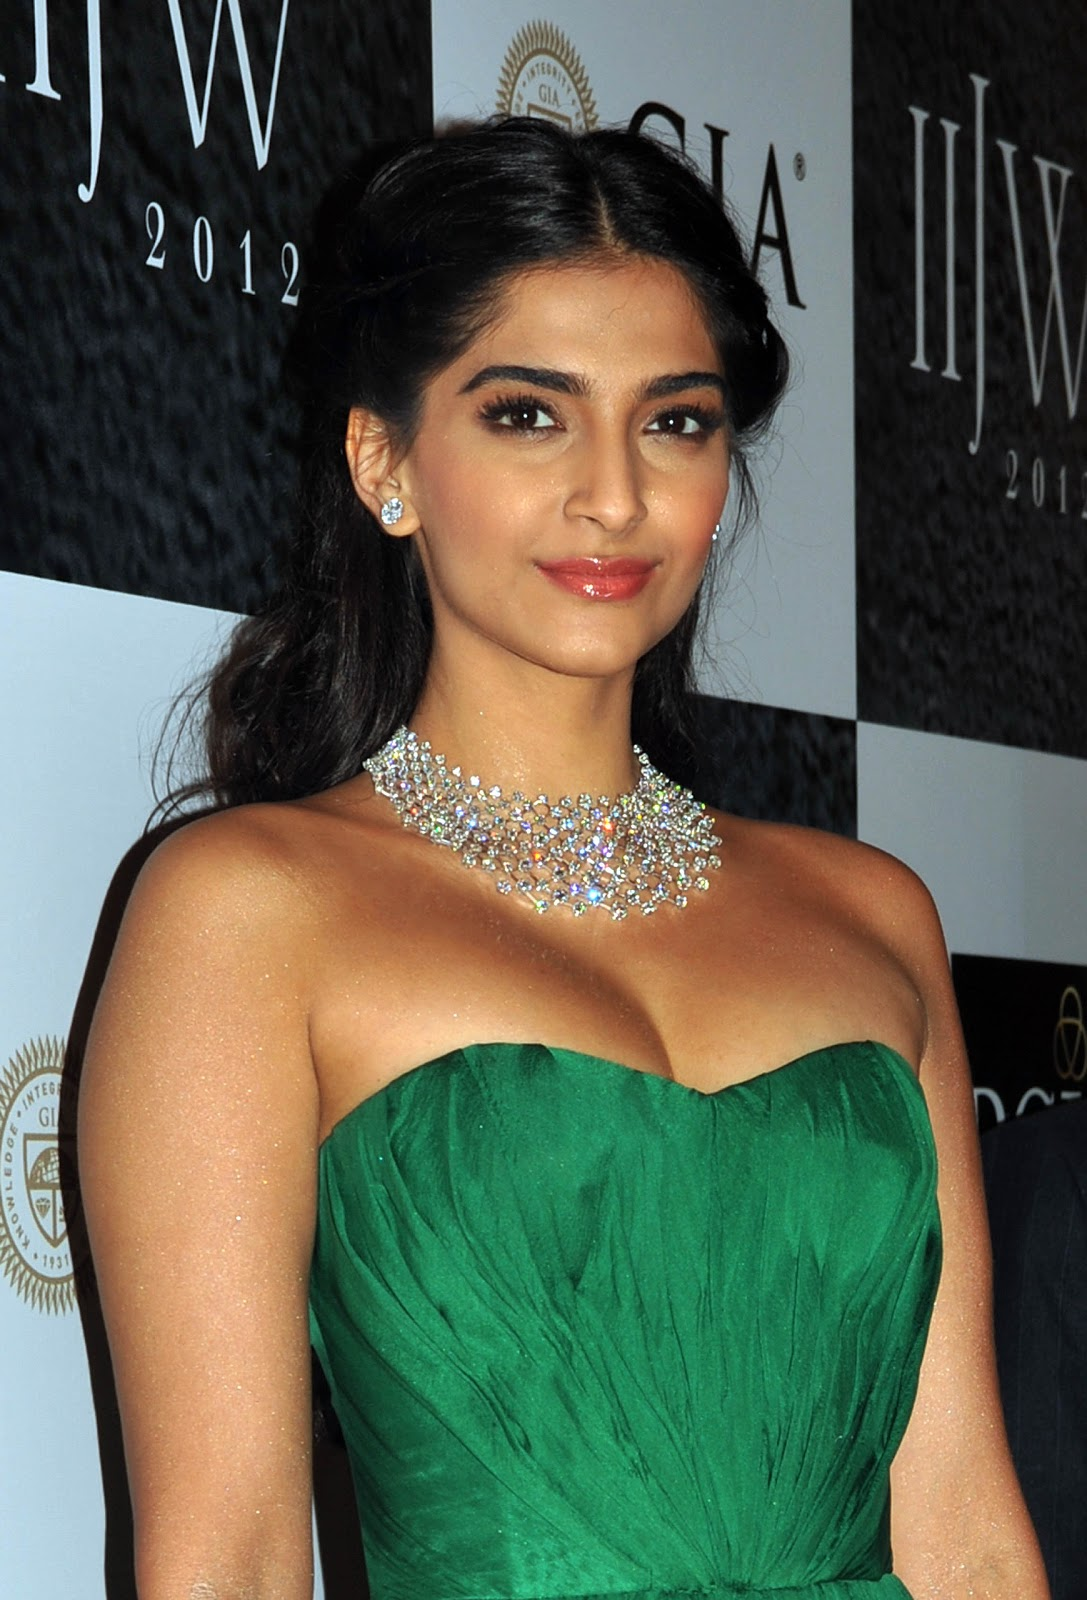 High Quality Bollywood Celebrity Pictures Sonam Kapoor